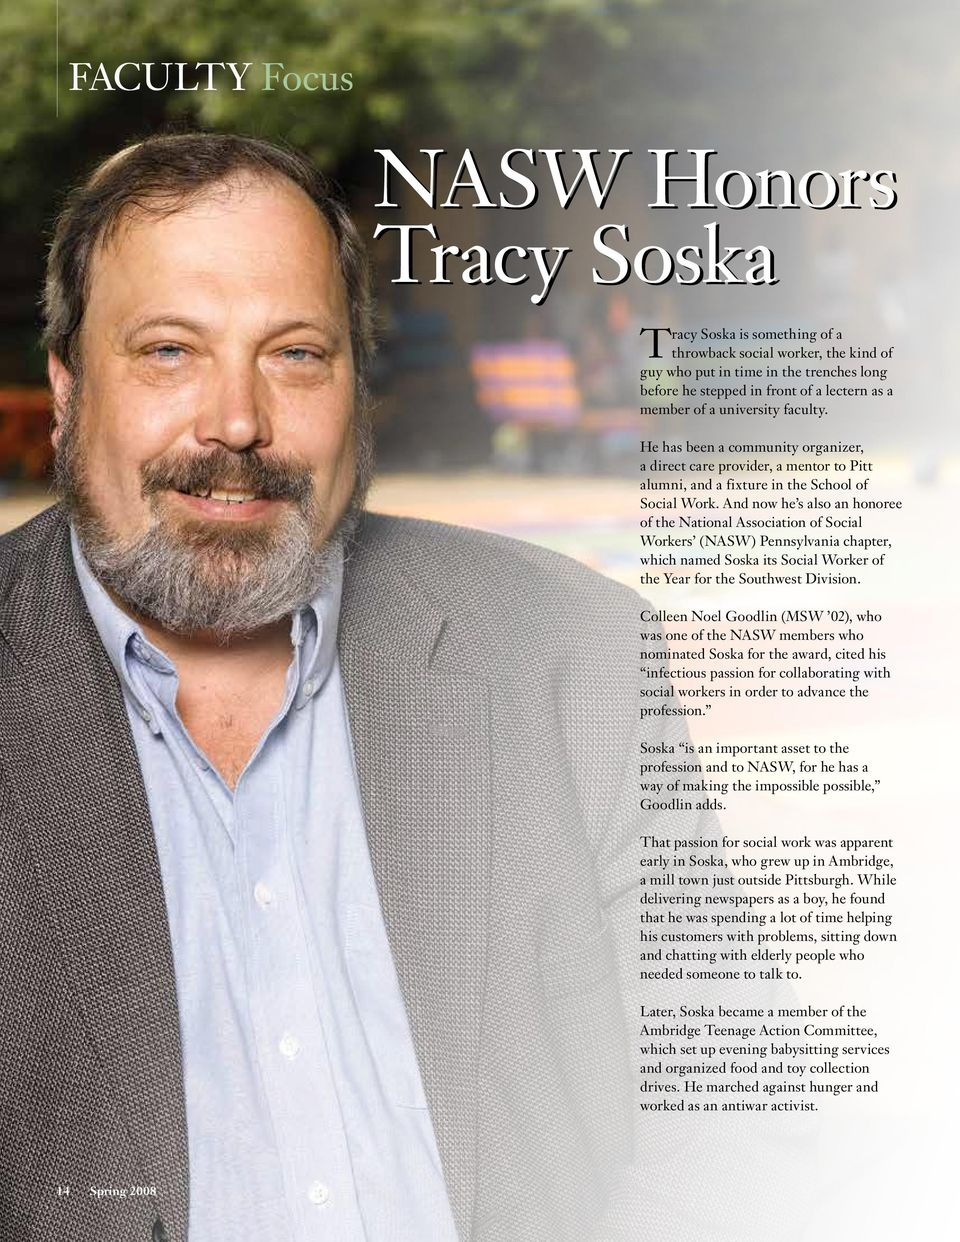 And now he s also an honoree of the National Association of Social Workers (NASW) Pennsylvania chapter, which named Soska its Social Worker of the Year for the Southwest Division.